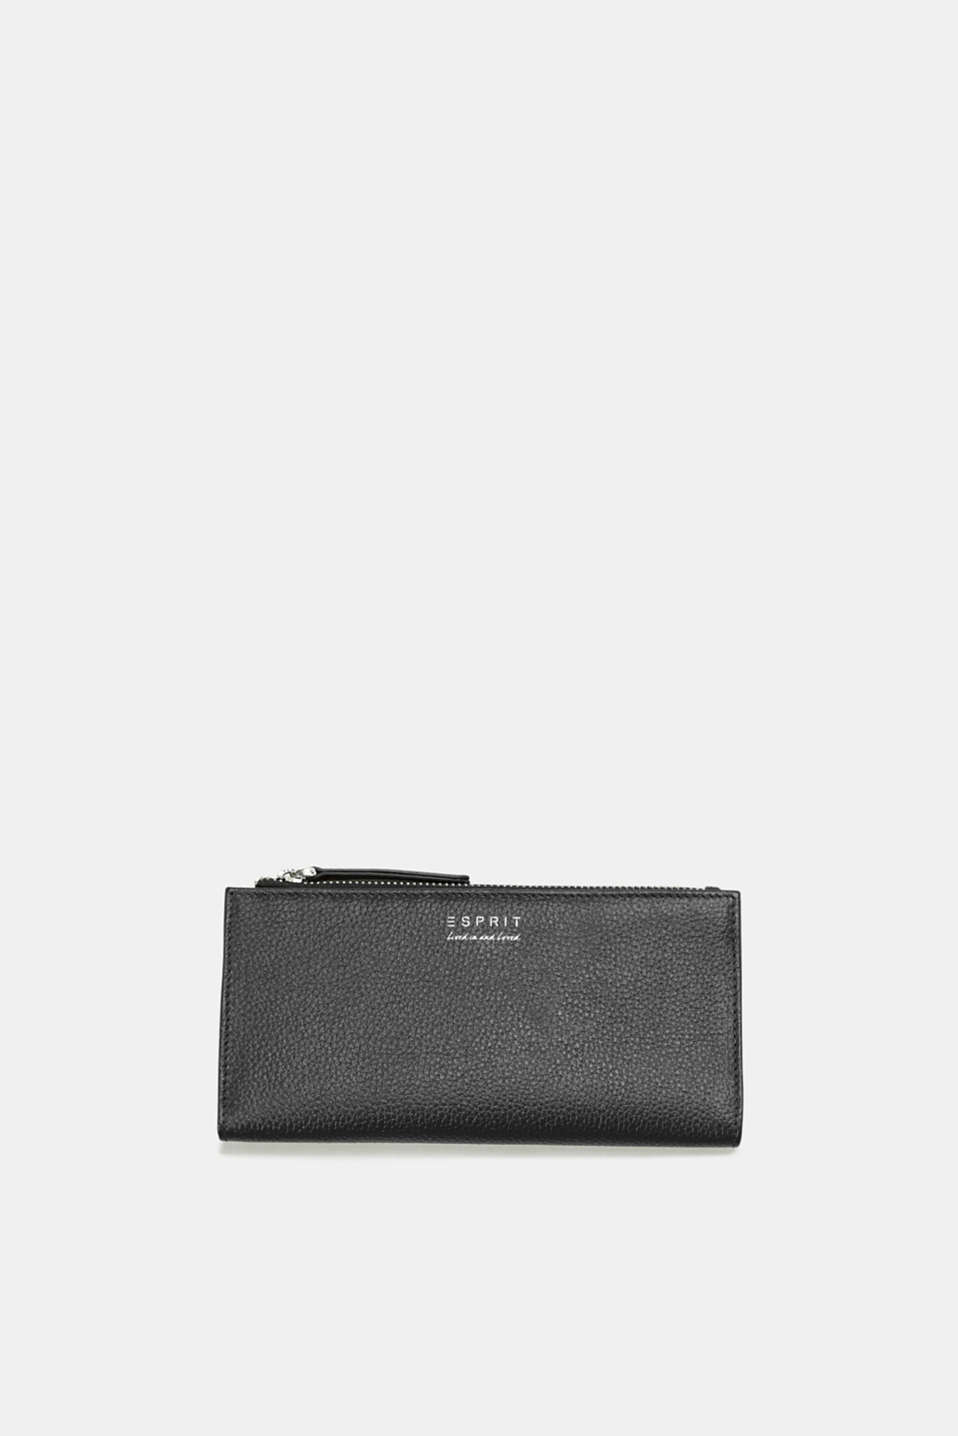 Esprit - Purse in 100% leather